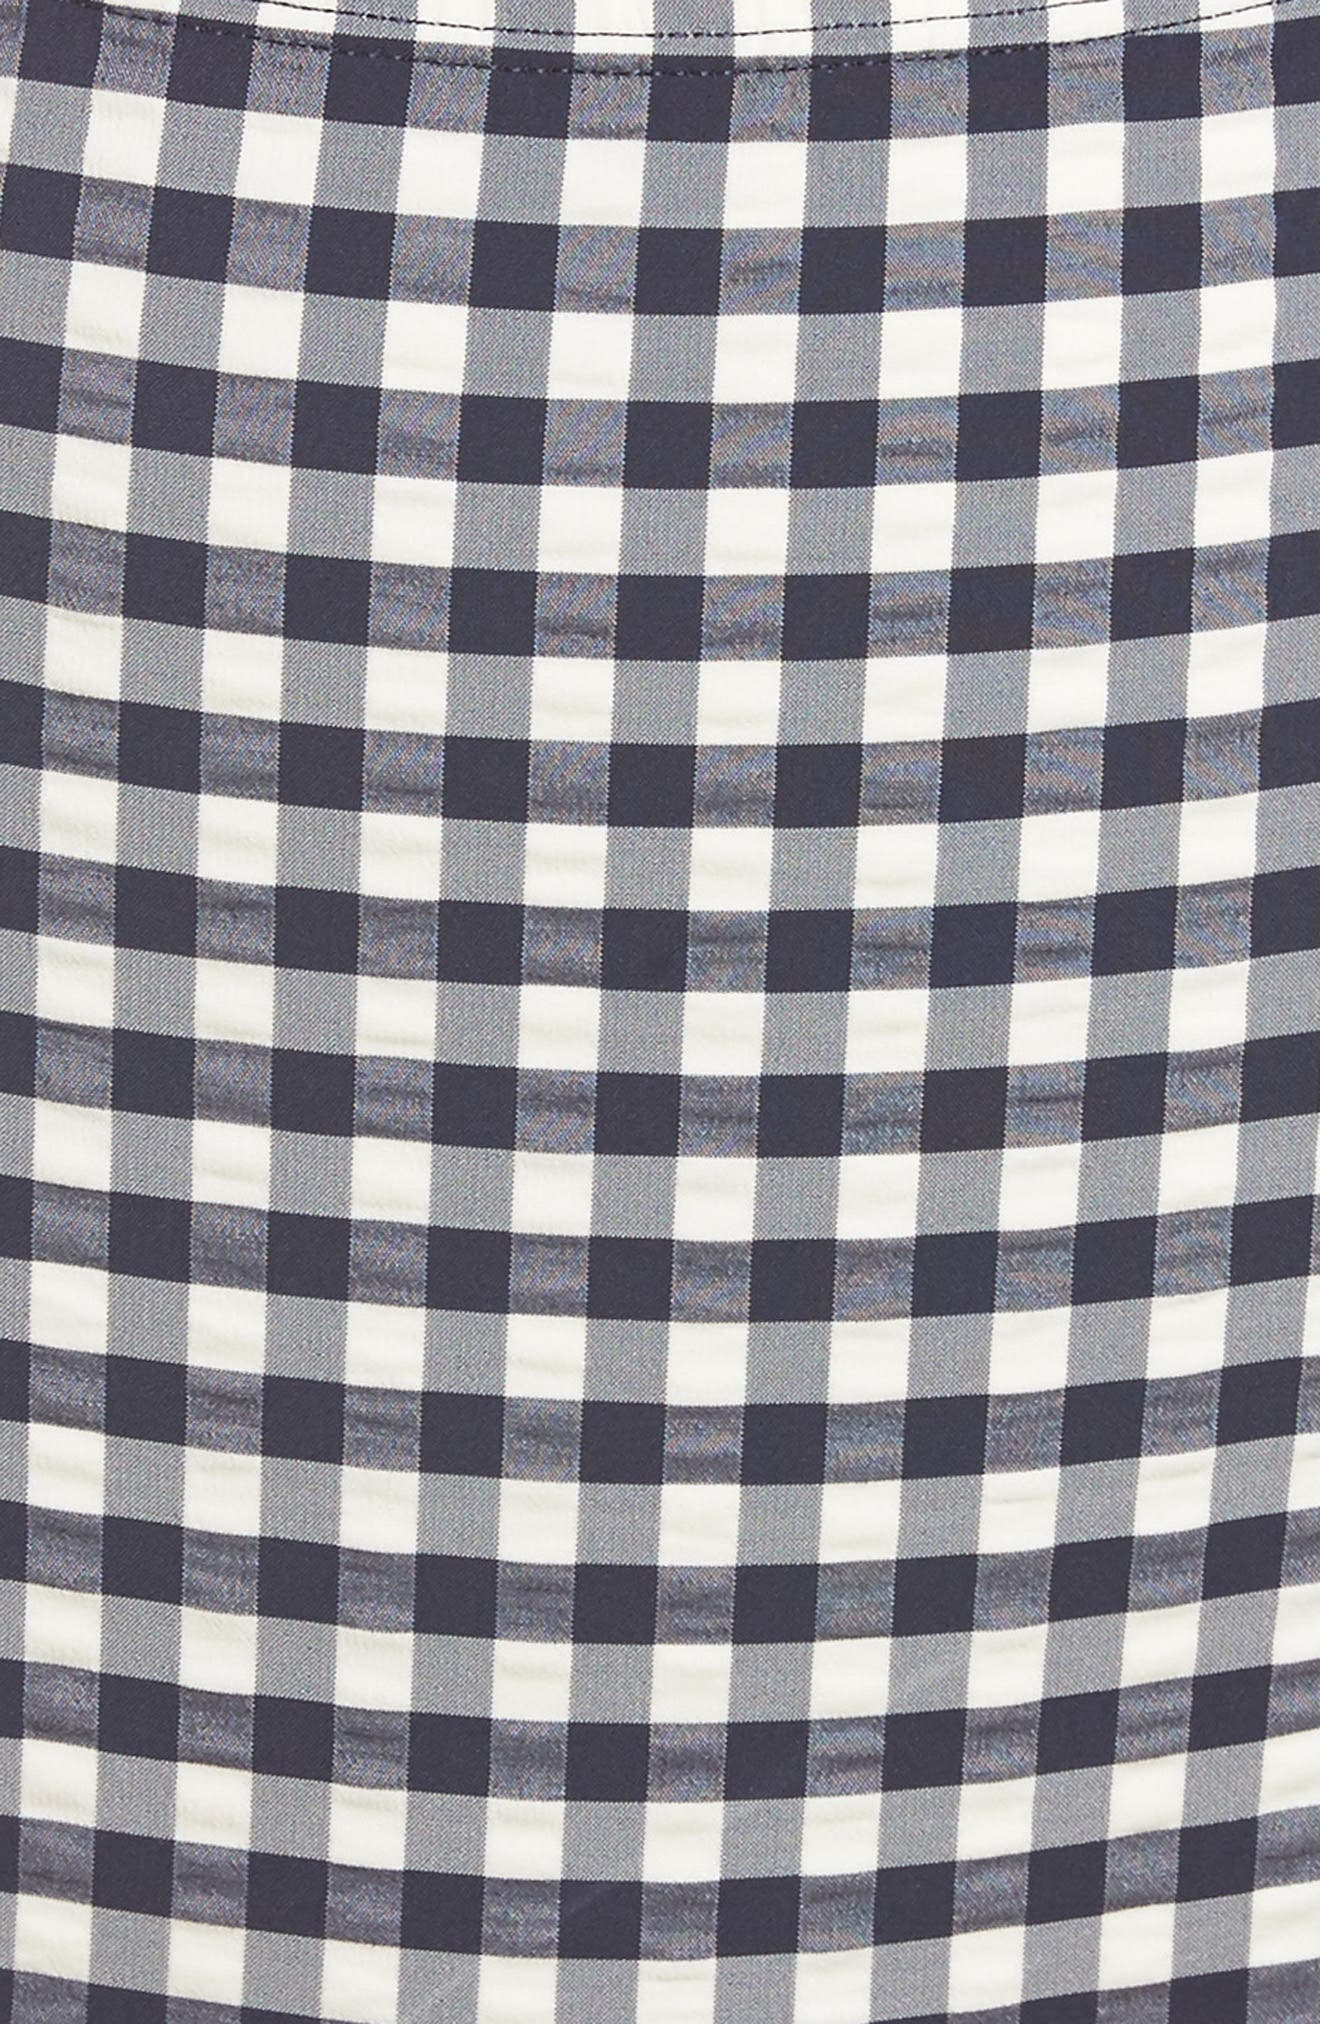 Gingham High Waist Bikini Bottoms,                             Alternate thumbnail 5, color,                             TORY NAVY / WHITE